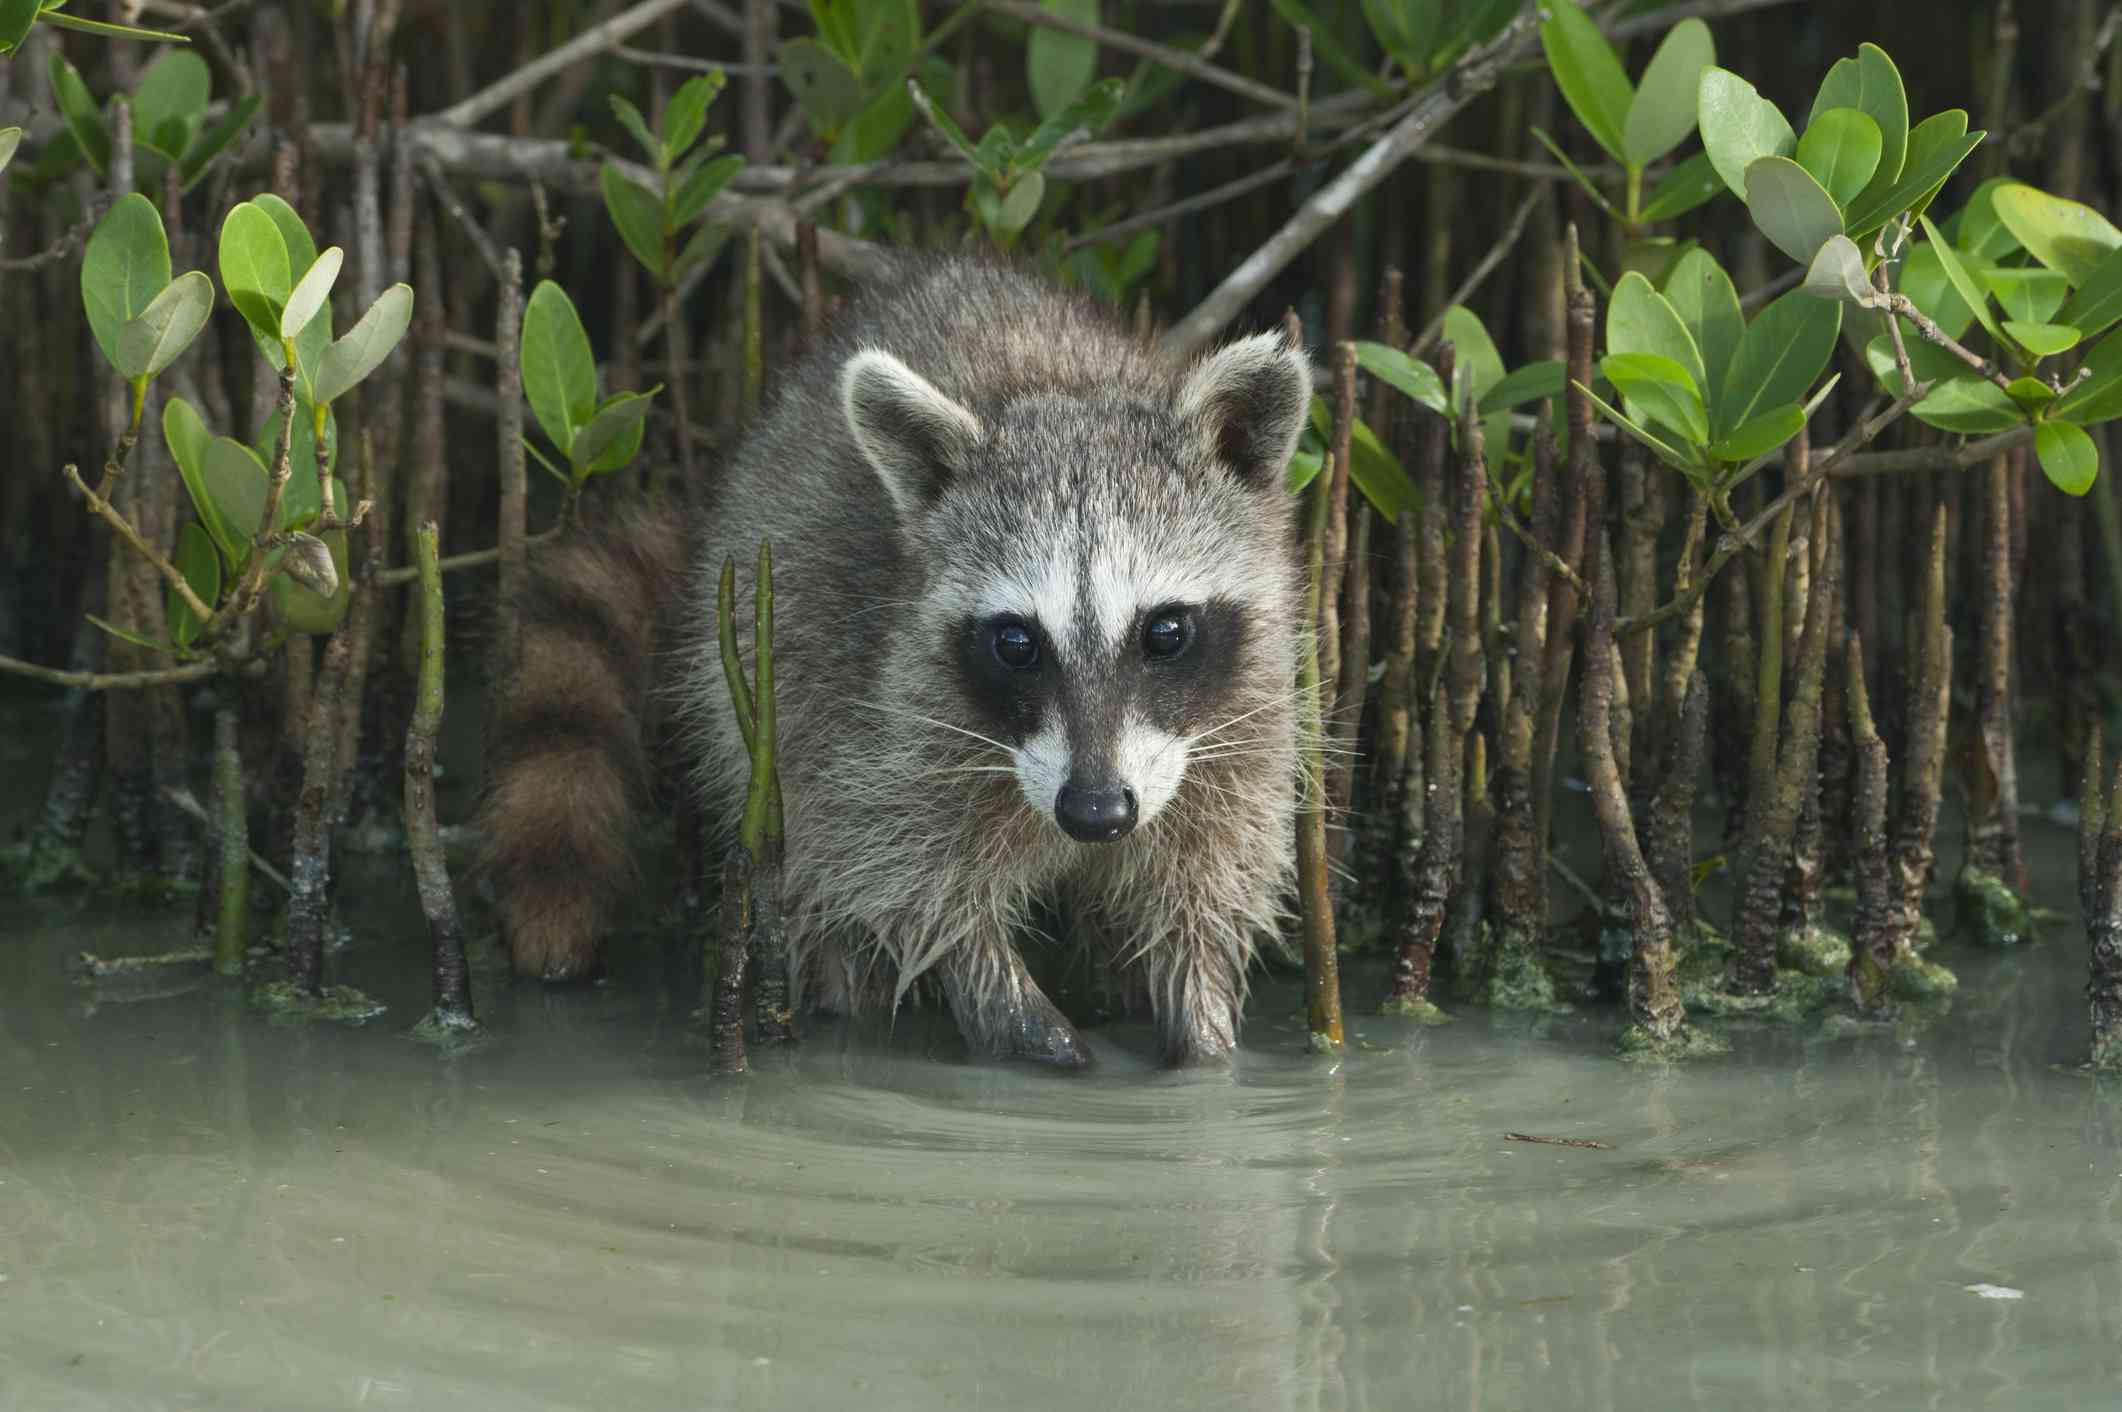 pygmy raccoon emerges from branches walks into water